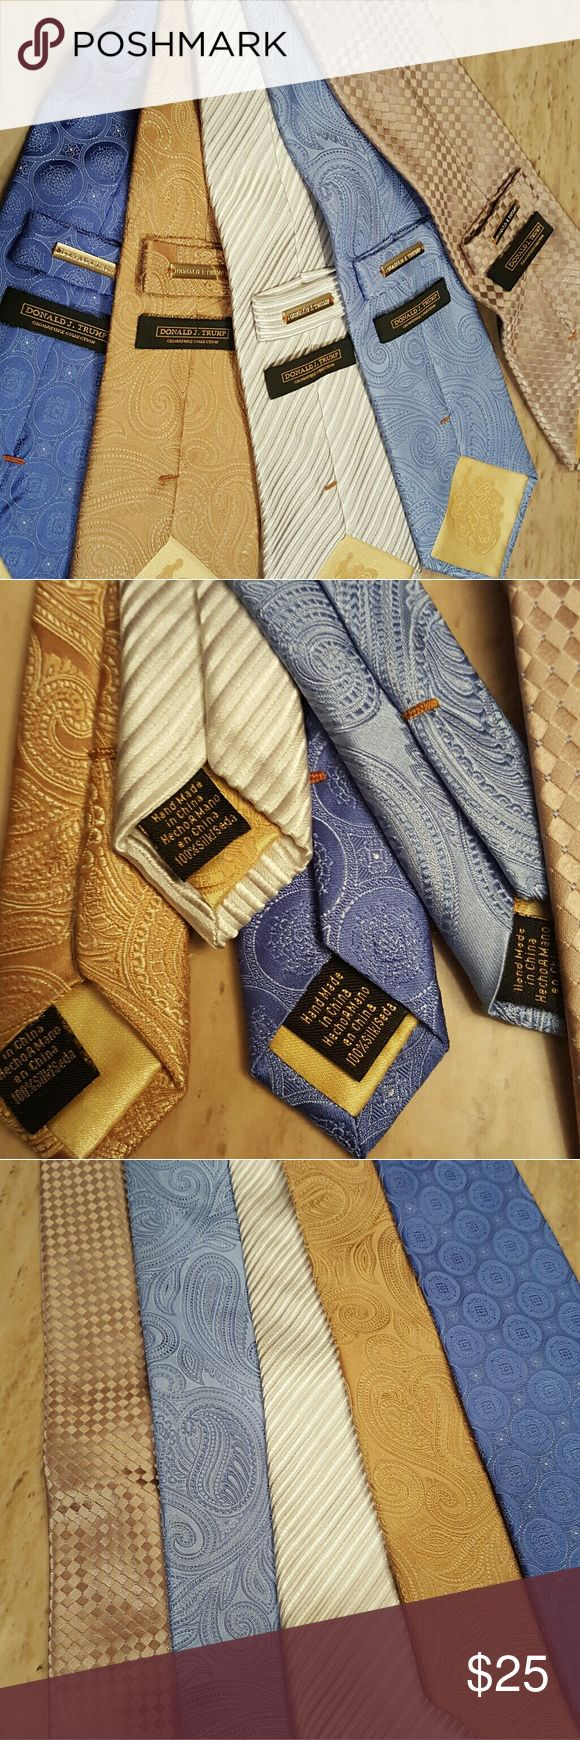 Donald Trump Ties Bundle of 5 ties.. From Macy's. Very NICE!  Lmao, the name on the ties says it all.. I have more ties then I know what to do with. Enjoy the bundle!!!! Accessories Ties